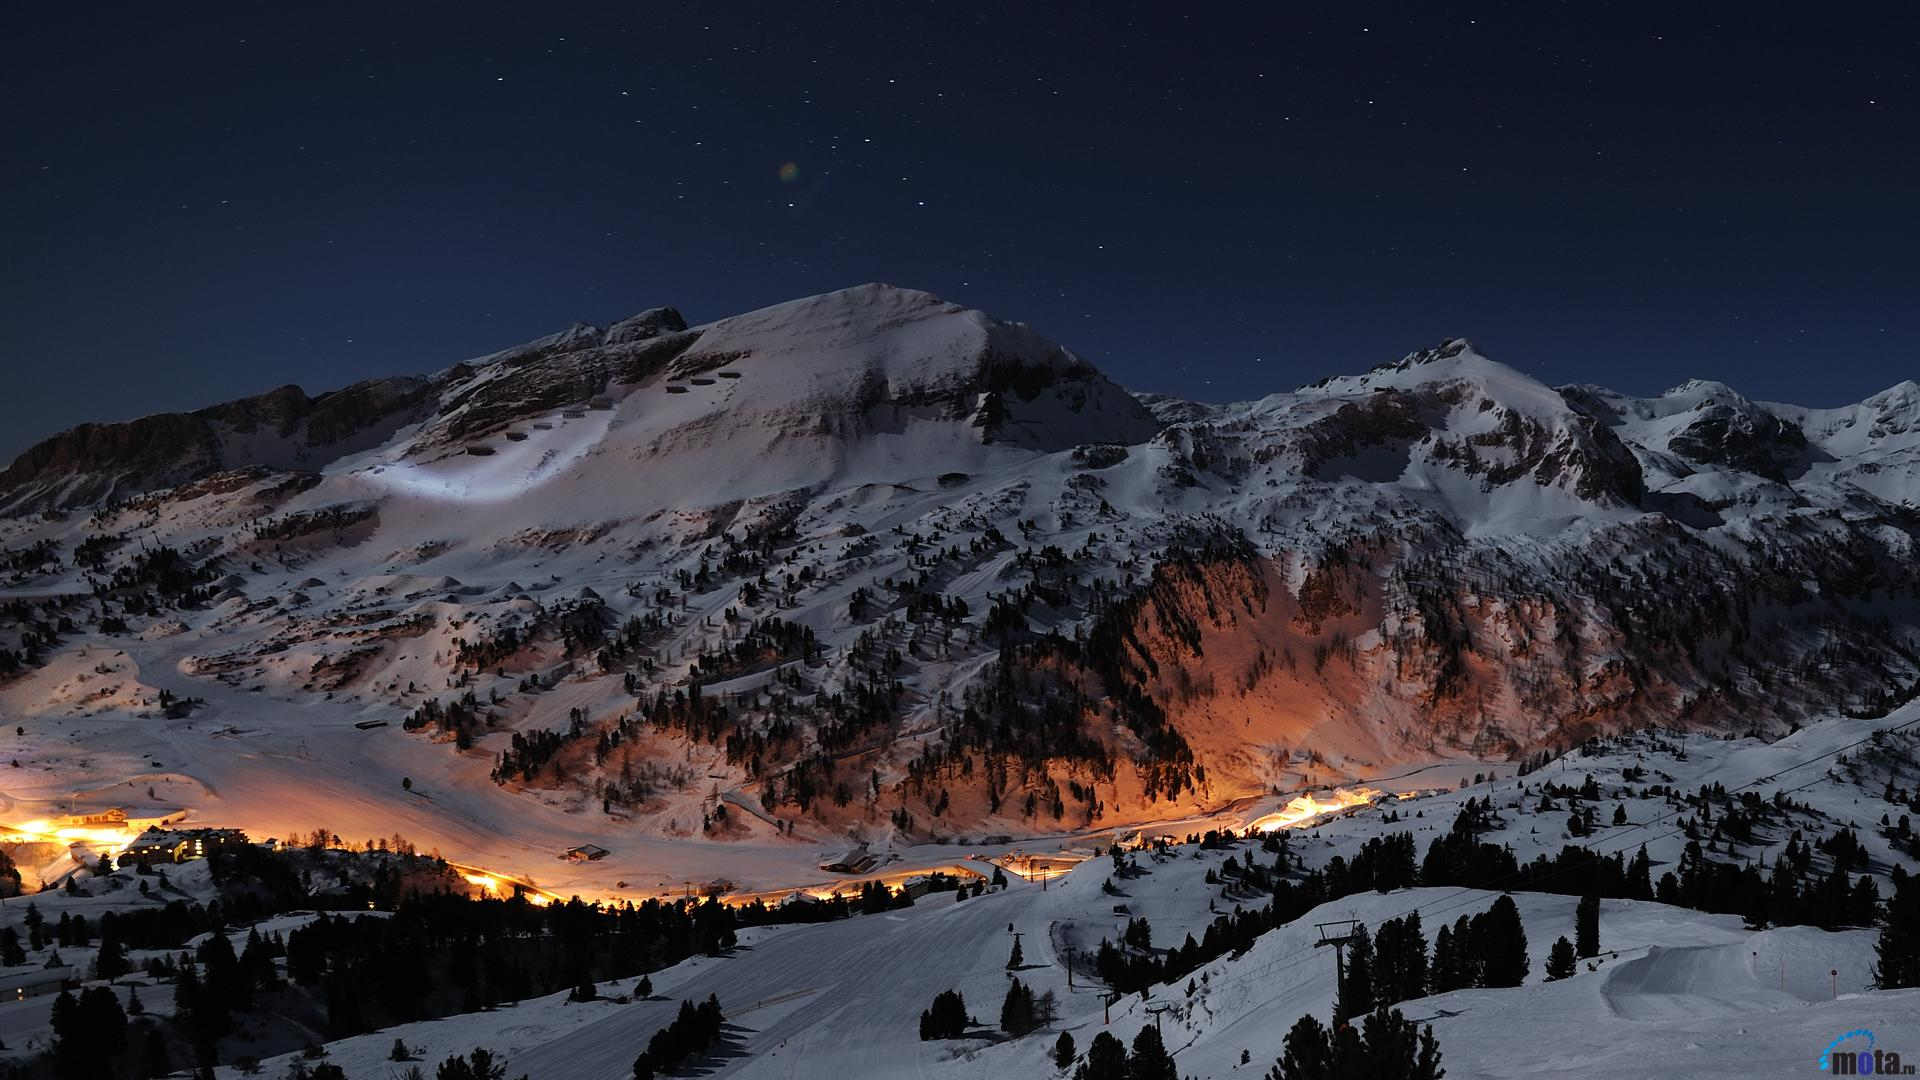 Download Wallpaper Nice view on the ski slopes at night 1920 x 1080 1920x1080